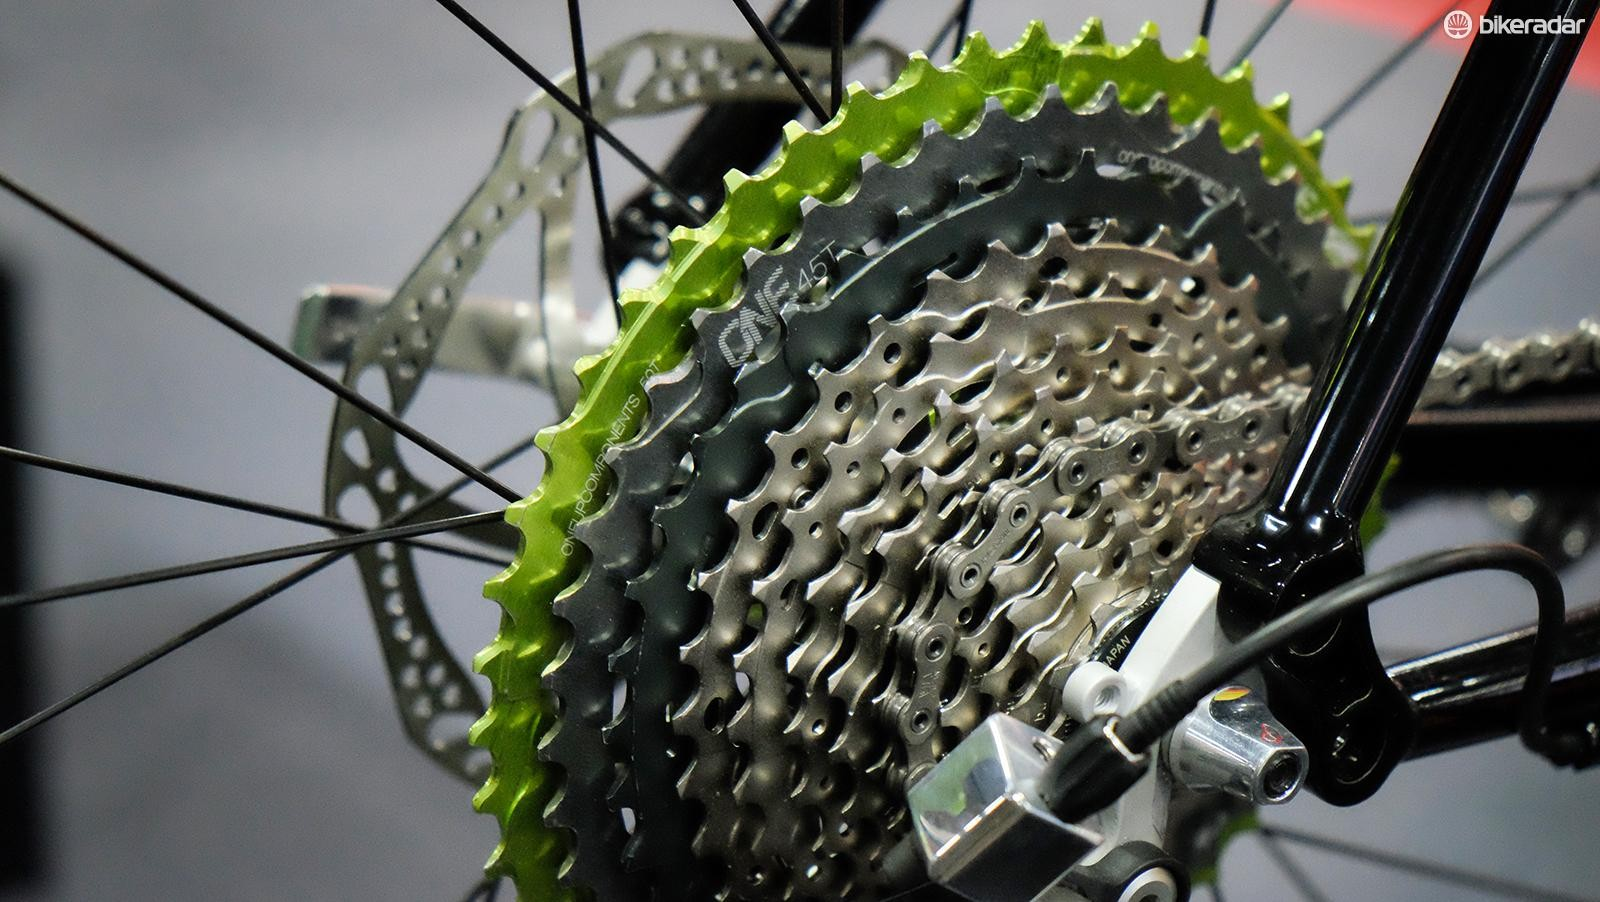 OneUp's 45 and 50t upgrade cogs have been added to an 11-speed cassette to get the extra range